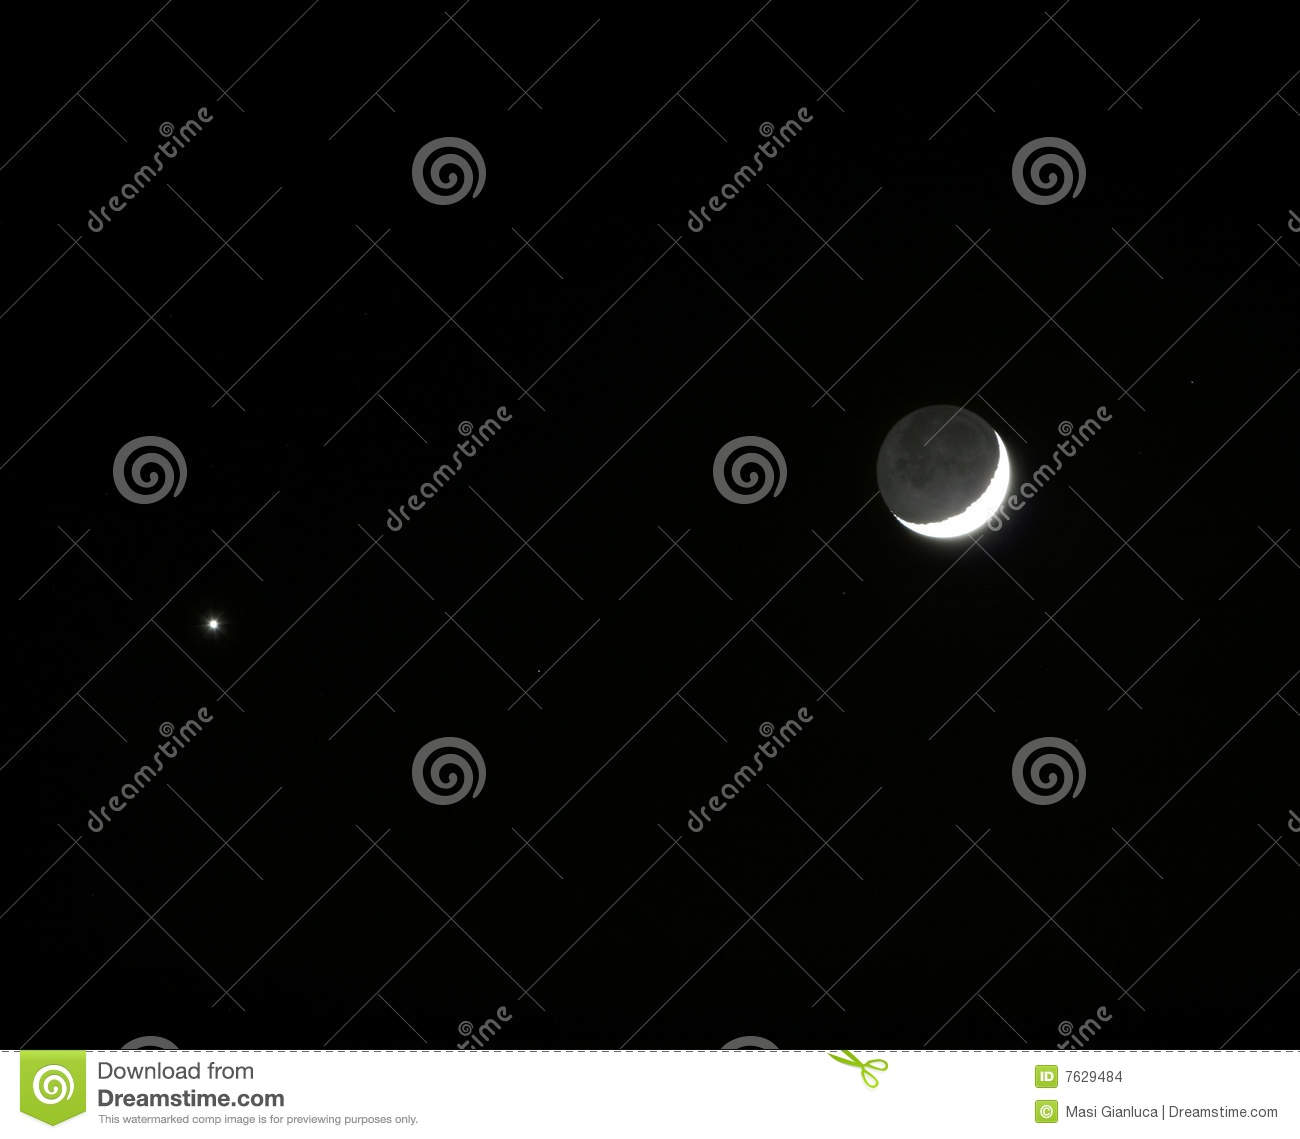 The Moon And Planet Venus Meets In The Sky Stock Photo